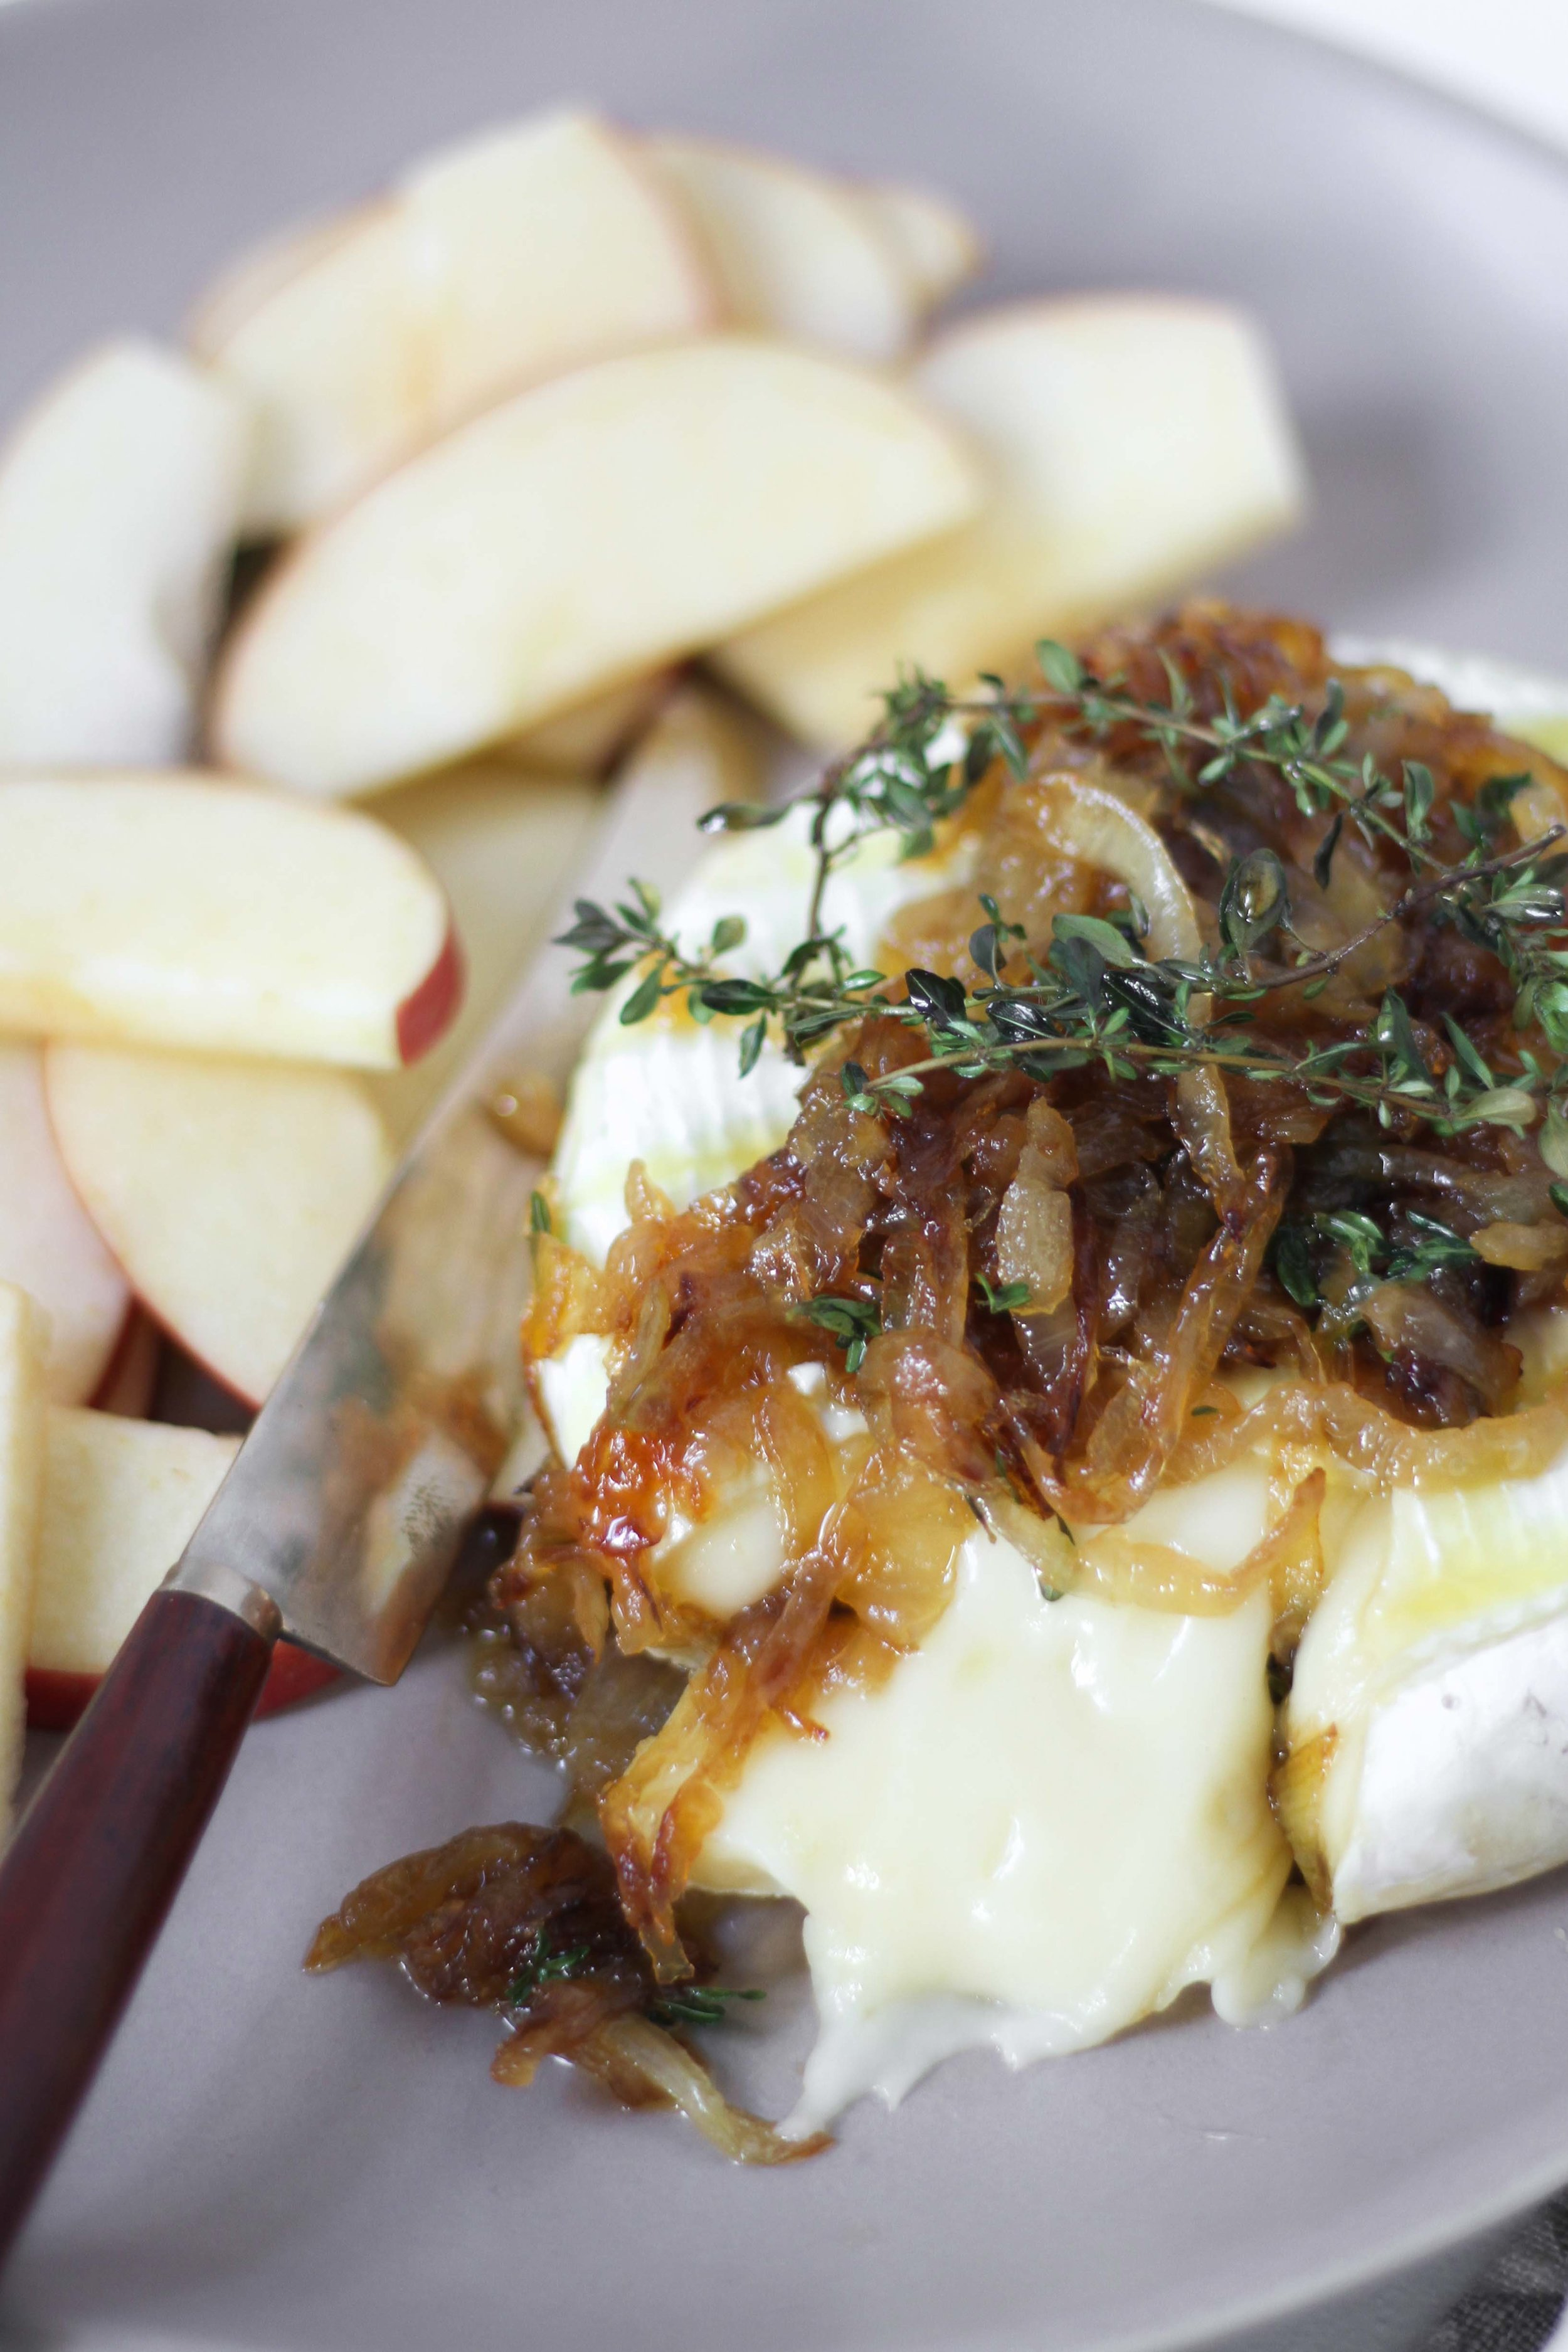 Baked honey brie with caramelized onions